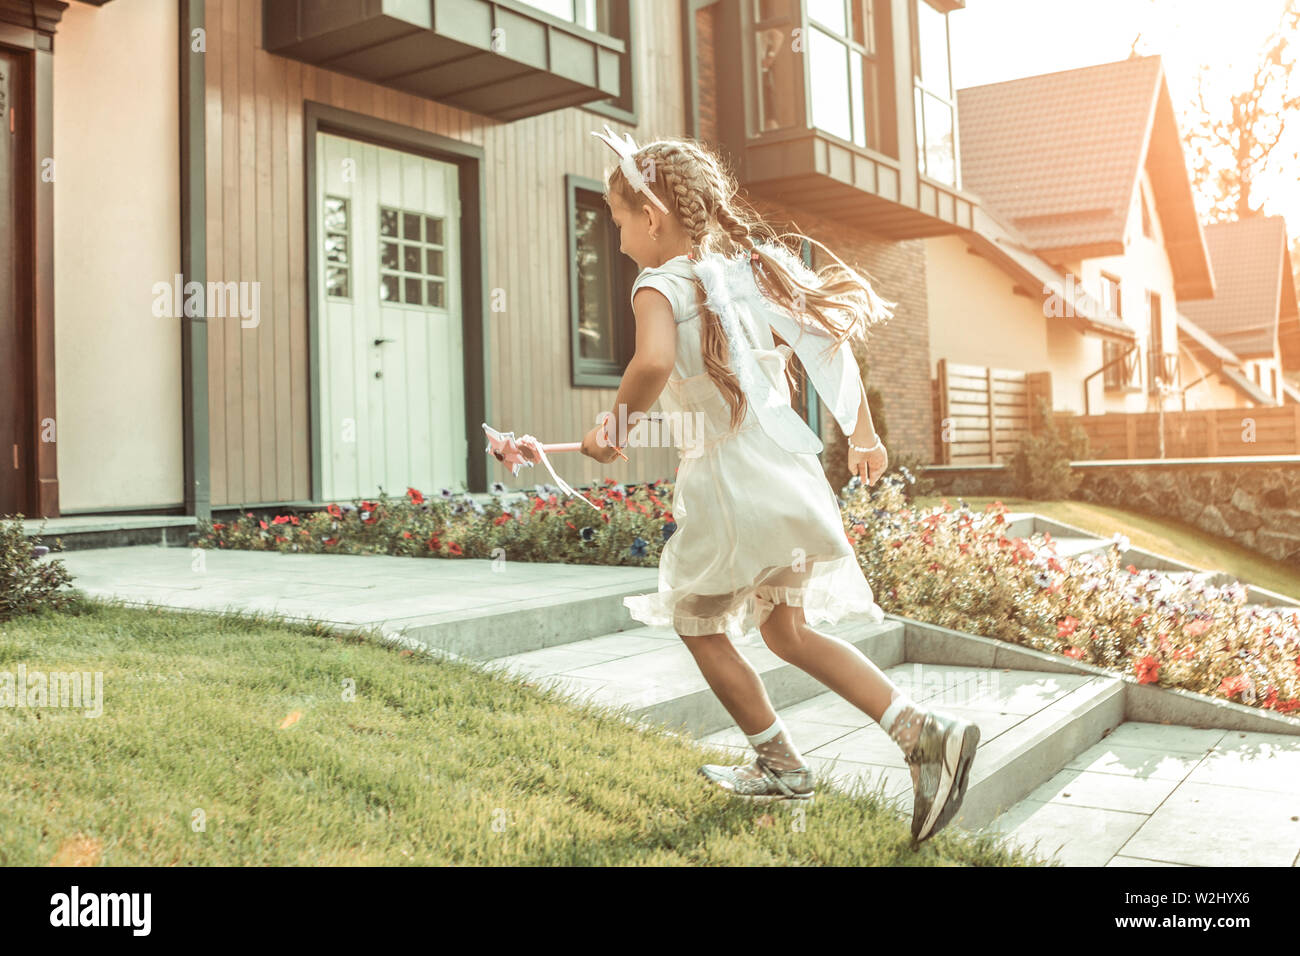 Sportive long-haired girl in white dress running on the porch Stock Photo